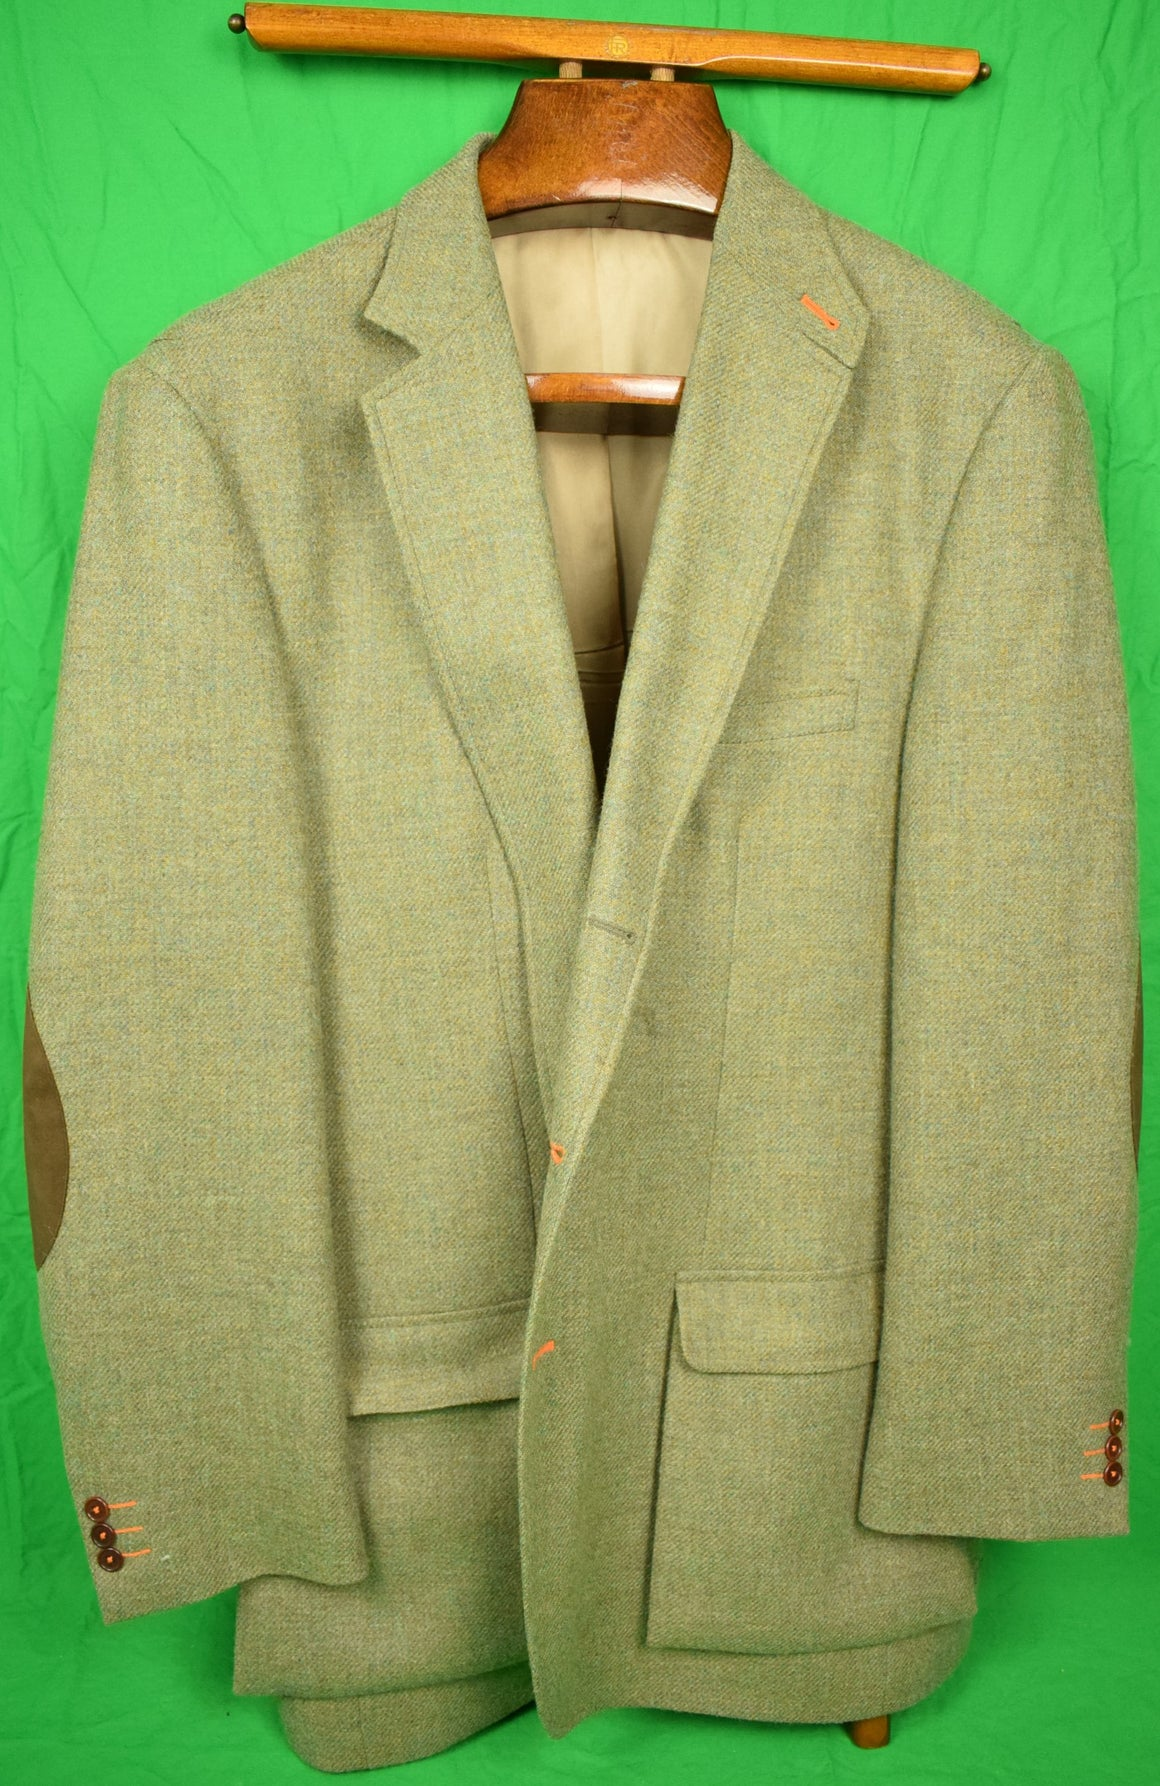 Orvis Lovat Shetland Tweed Shooting Jacket Sz: 46L